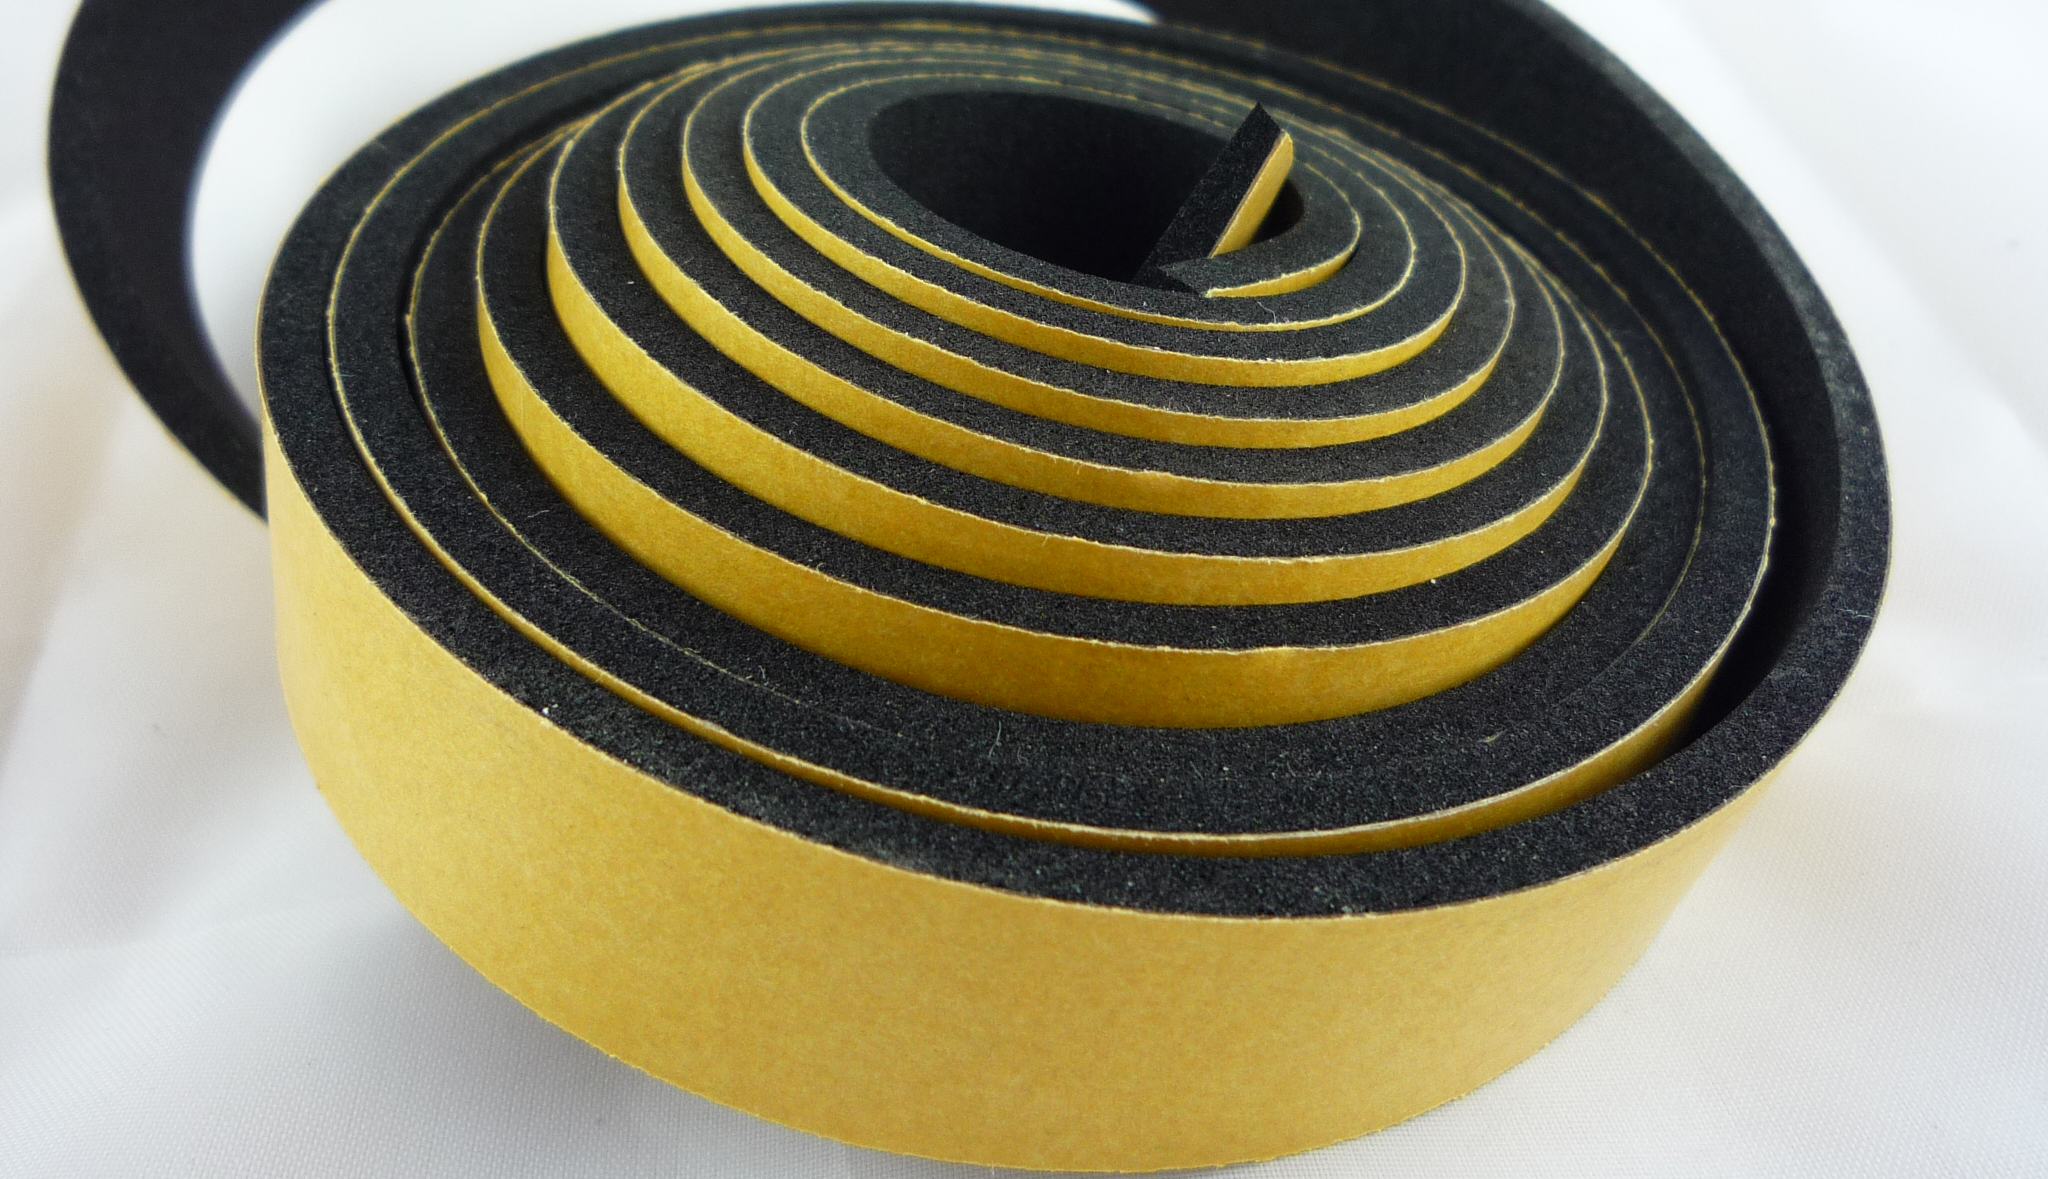 Blog China Manufacturer Of Epdm Rubber Extrusions Rubber